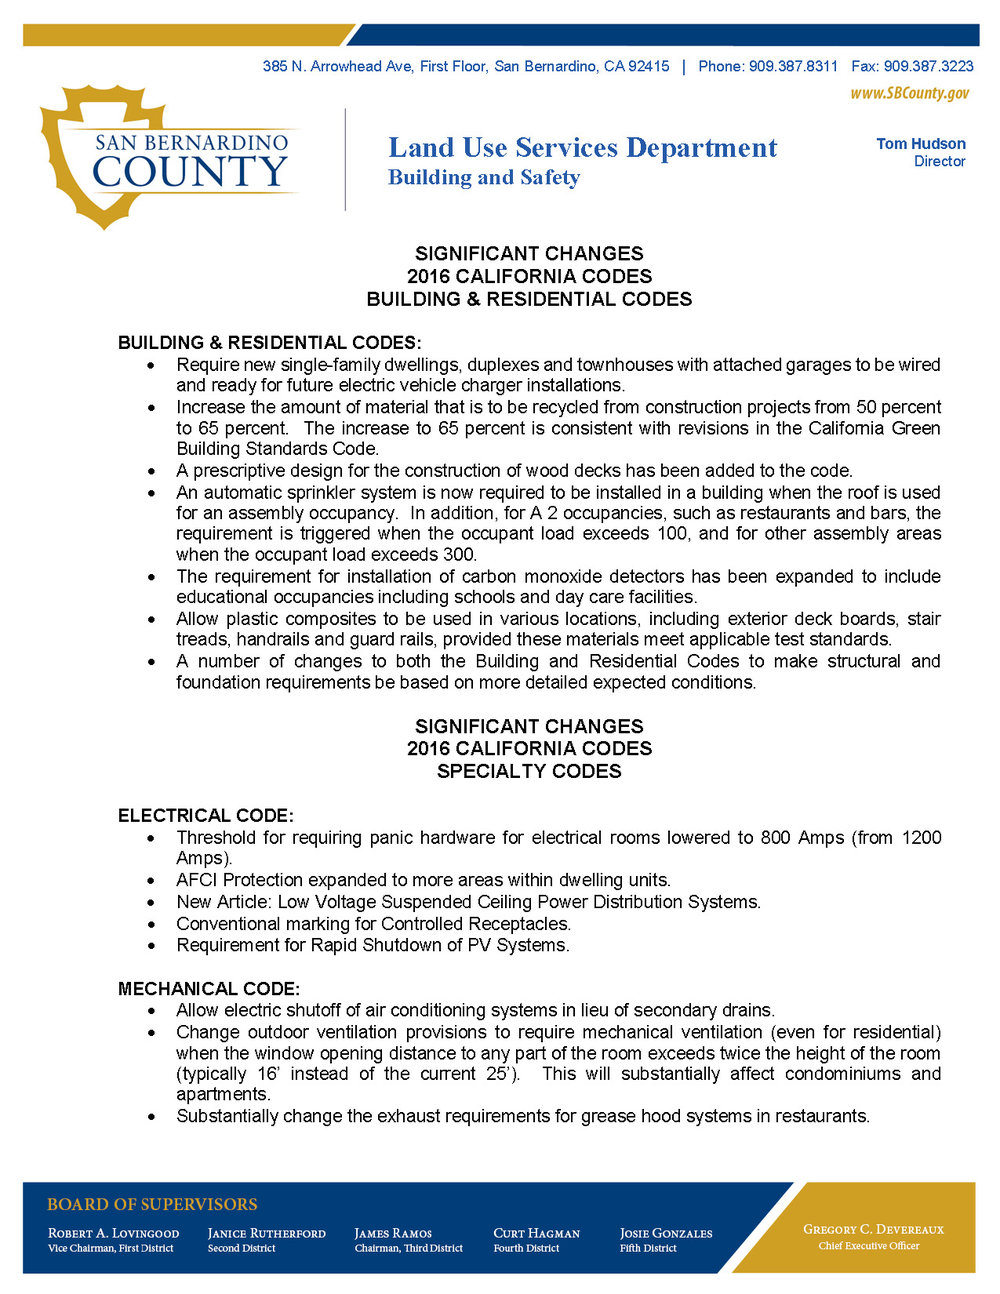 San Bernardino County Land-Use Services Department